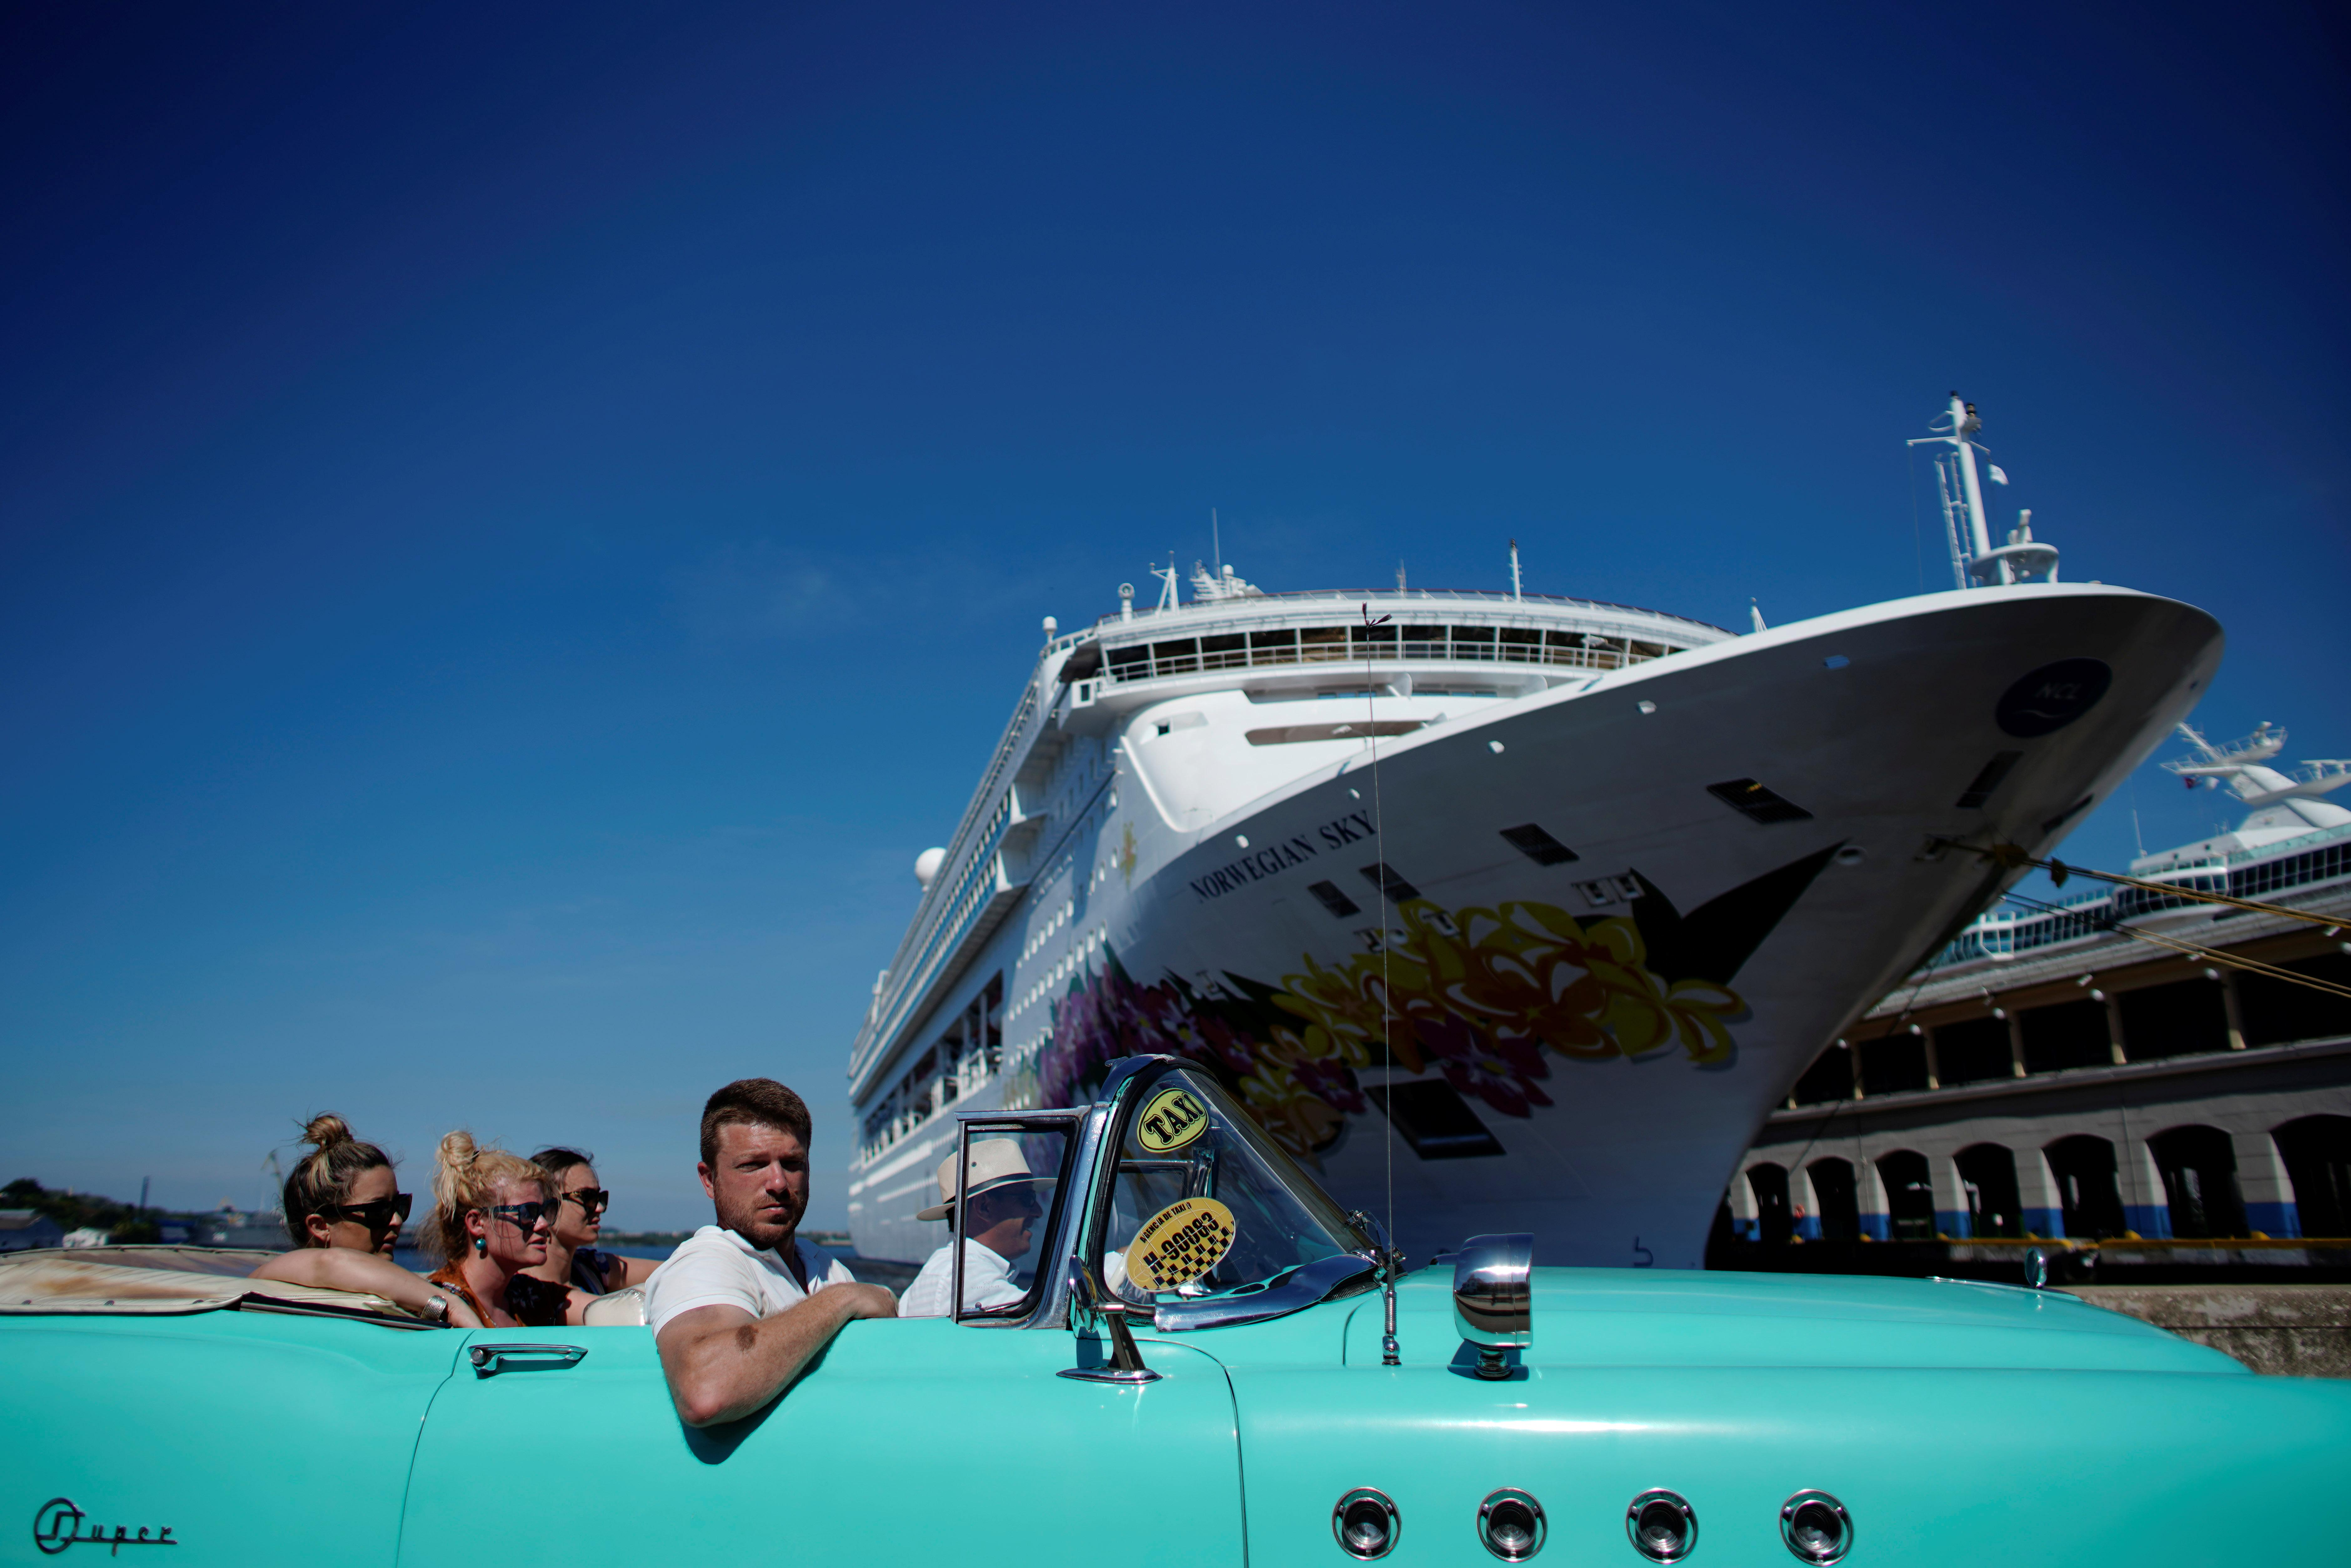 U.S. cruise operators to stop sailing to Cuba; travelers vent anger online